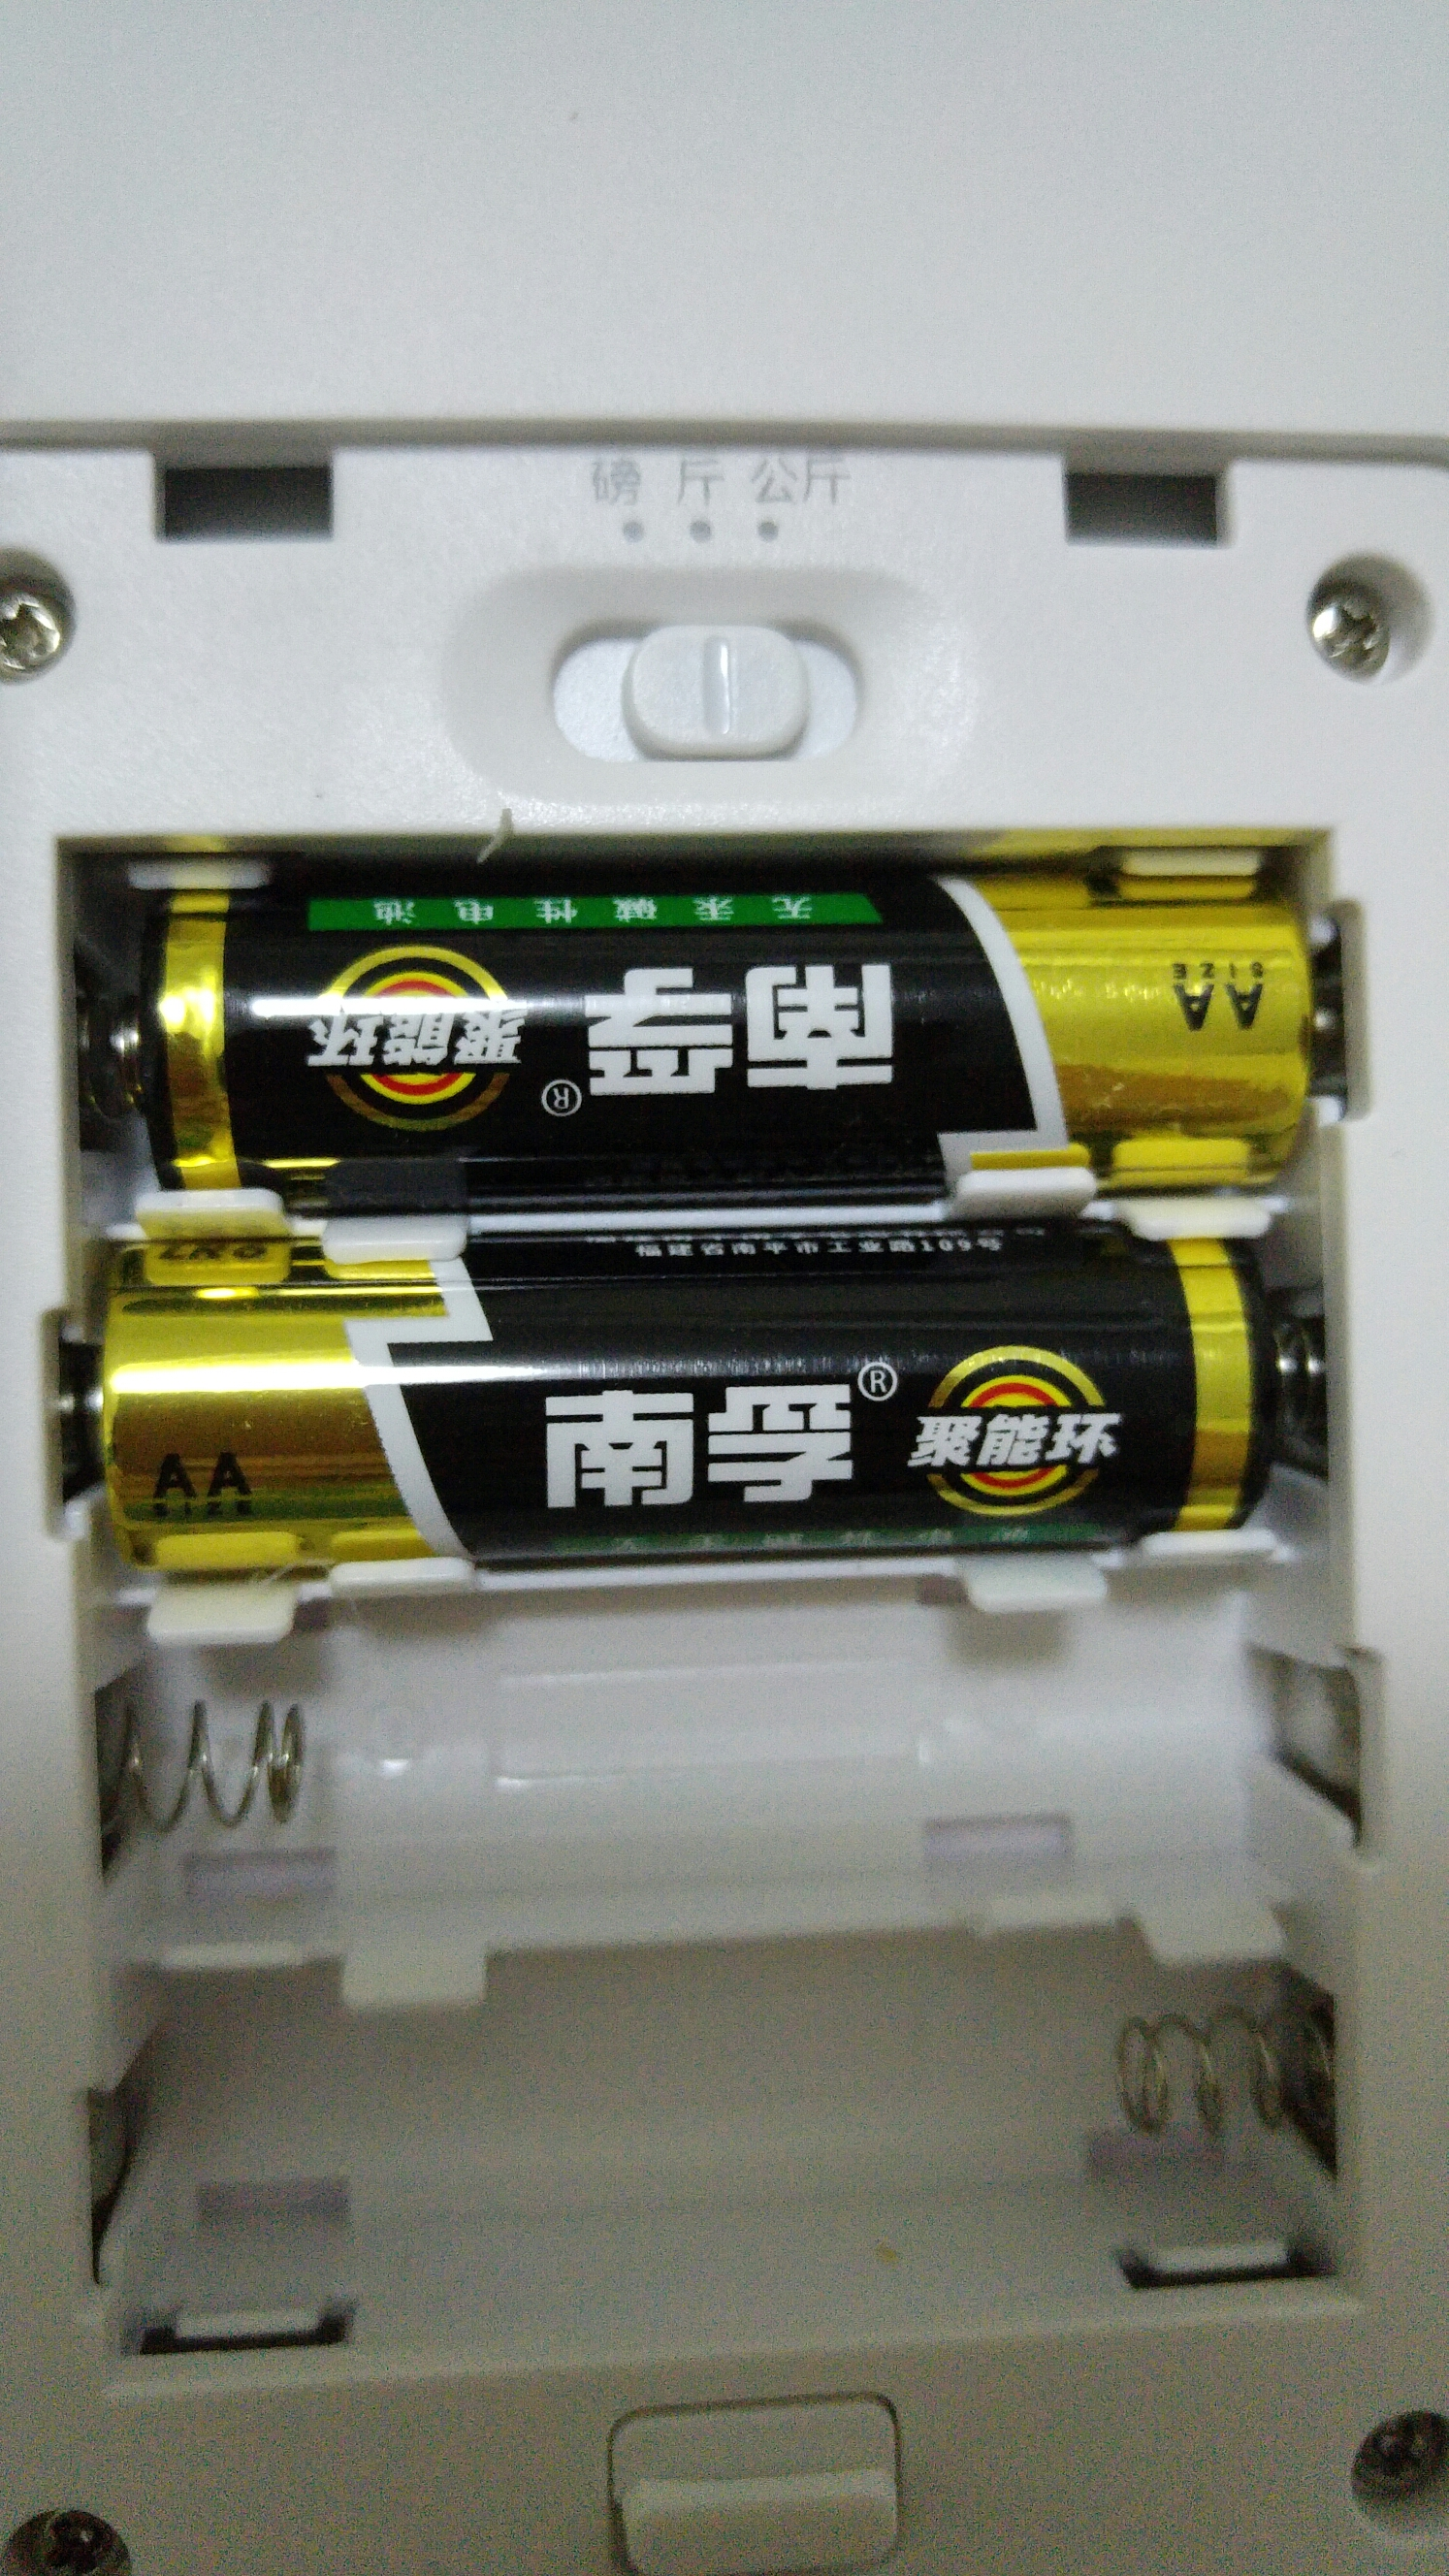 Batteries for bathroom scales - In Chinese Characters Pounds Jin Kilograms Adjust Accordingly Takes 4 Aa Batteries